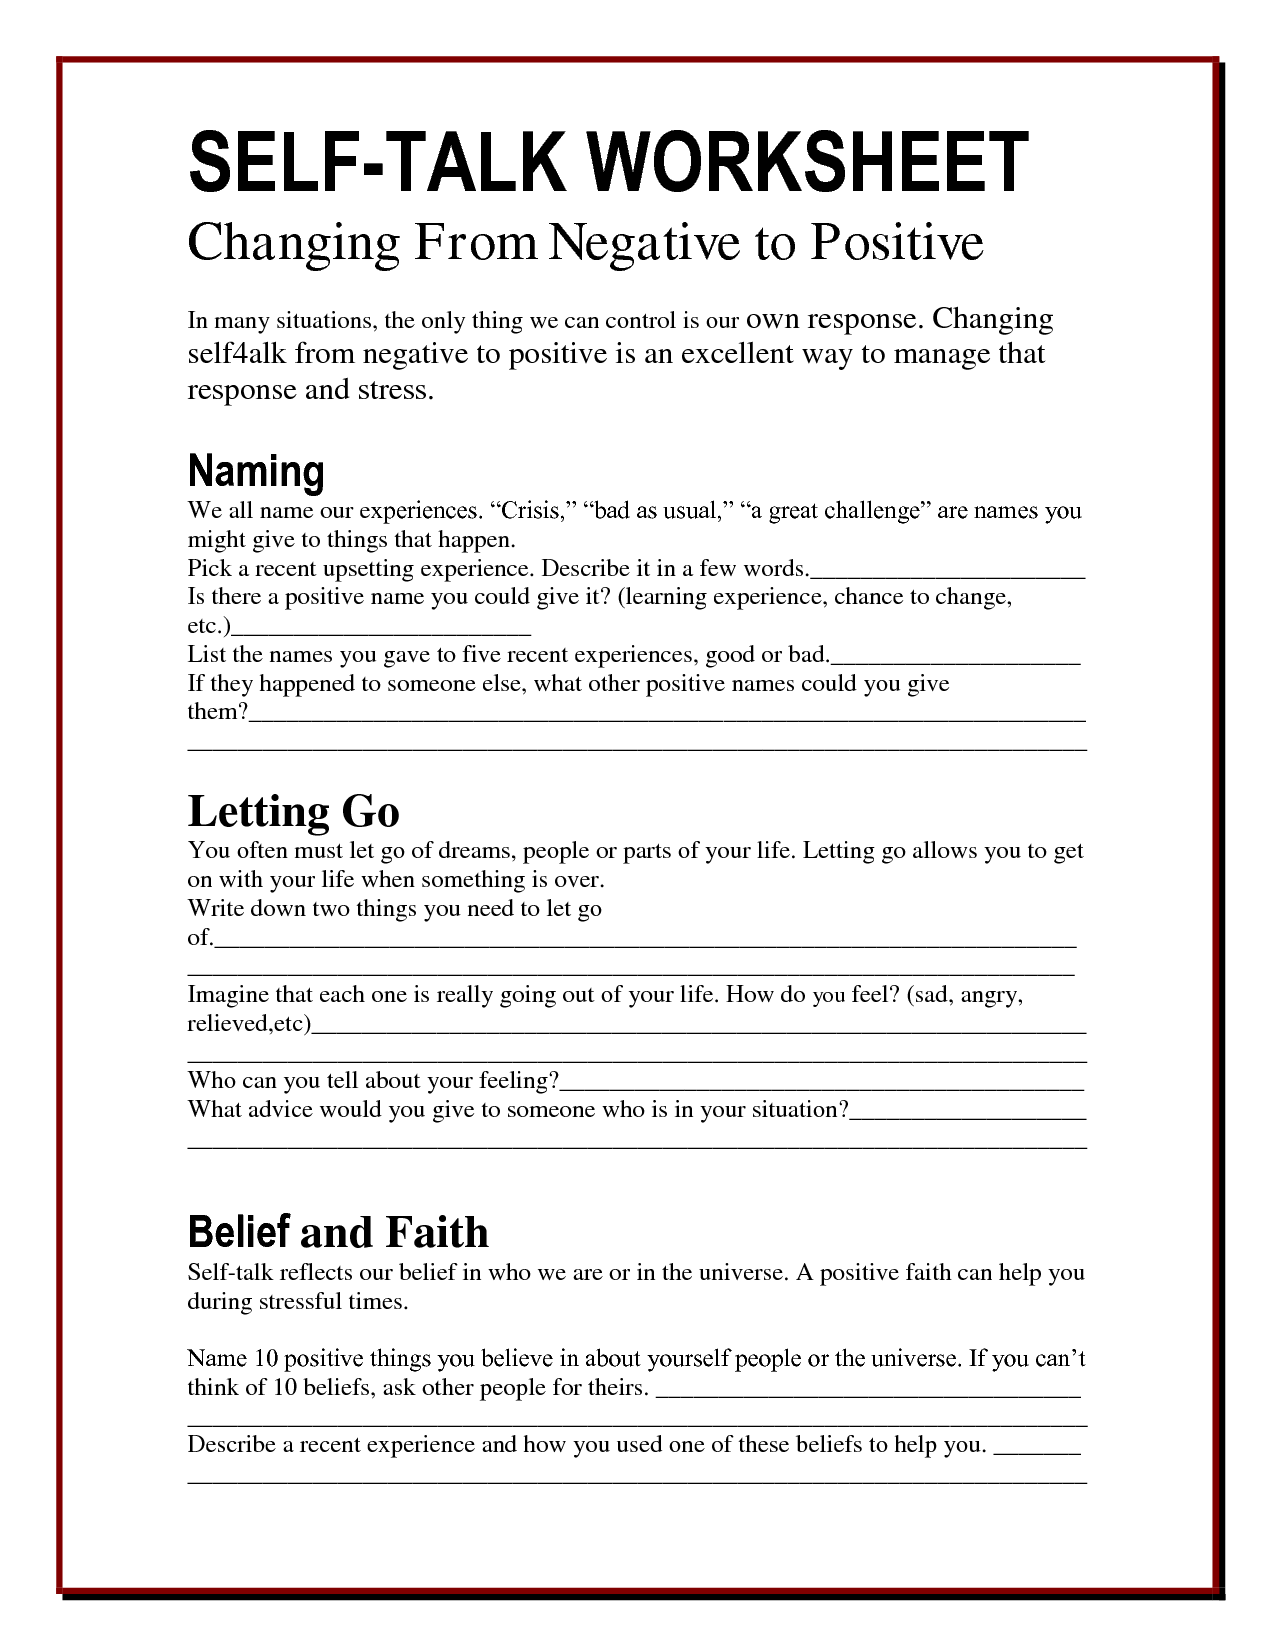 worksheet Cognitive Behavioral Therapy For Anxiety Worksheets for more tips to better manage the anxiety in your life visit cbt